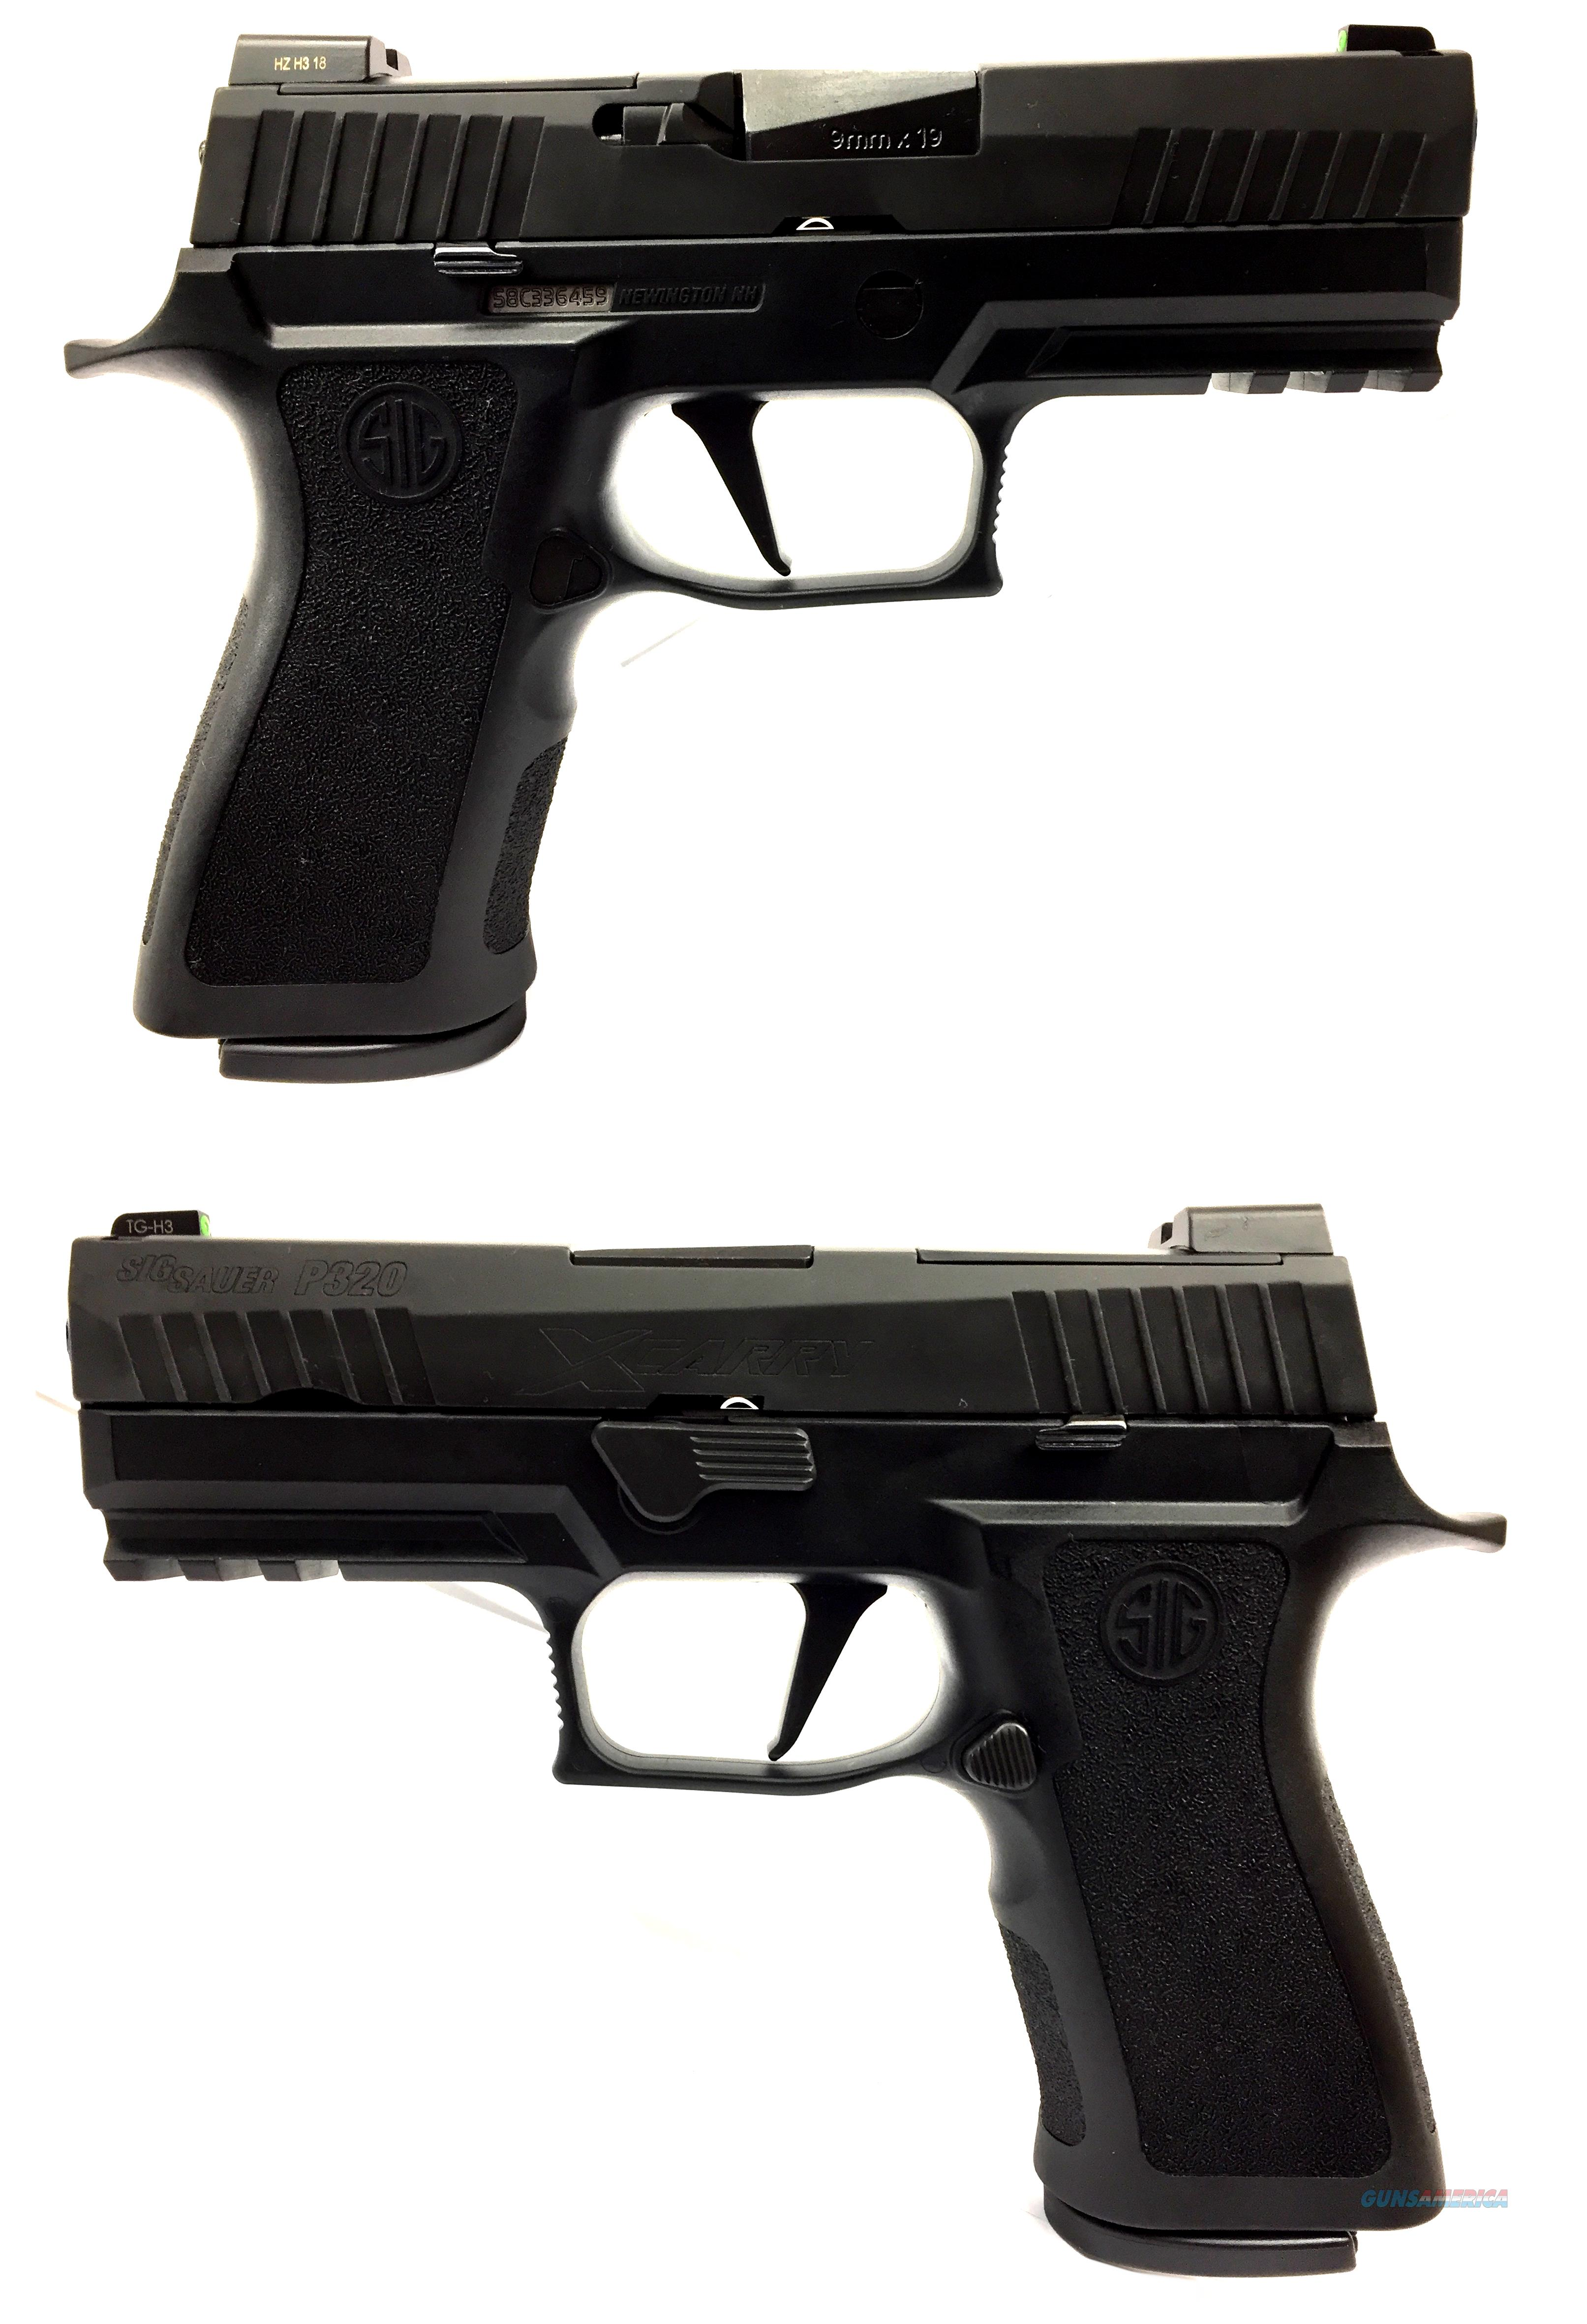 Sig Sauer P320 XCARRY 9MM Semi-Automatic Pistol  Guns > Pistols > Sig - Sauer/Sigarms Pistols > P320